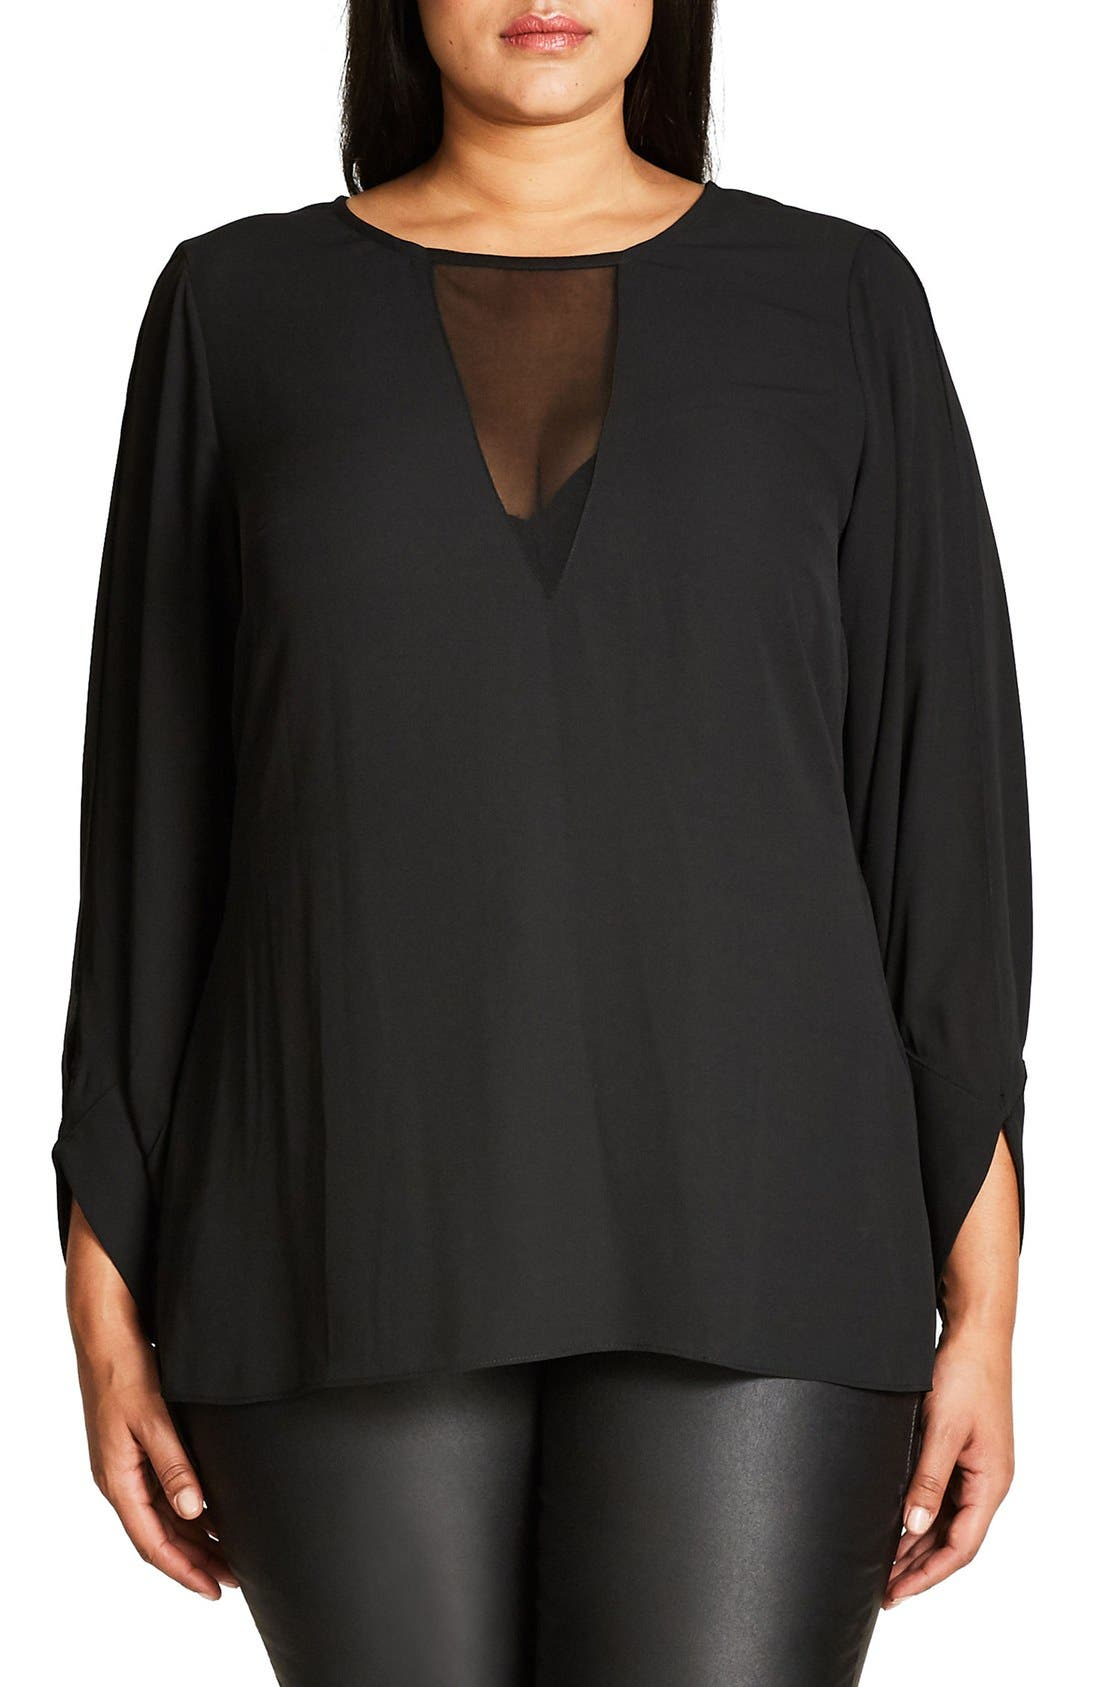 Alternate Image 1 Selected - City Chic Peekaboo Blouse (Plus Size)